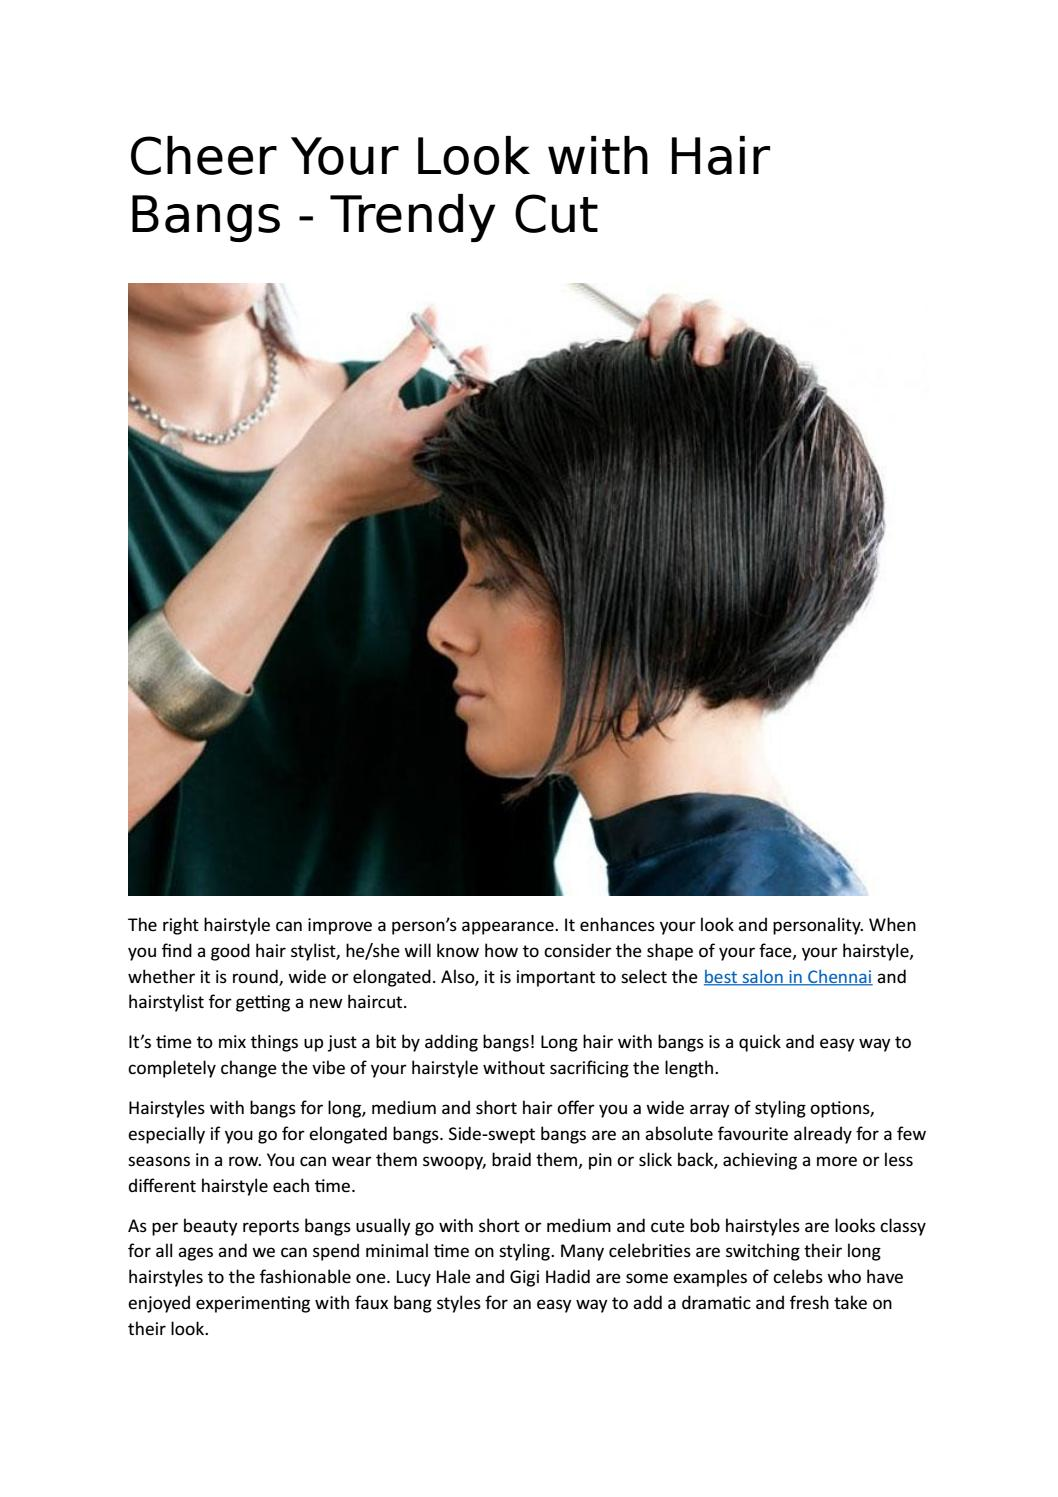 cheer your look with hair bangs trendy cut by eleganz salon